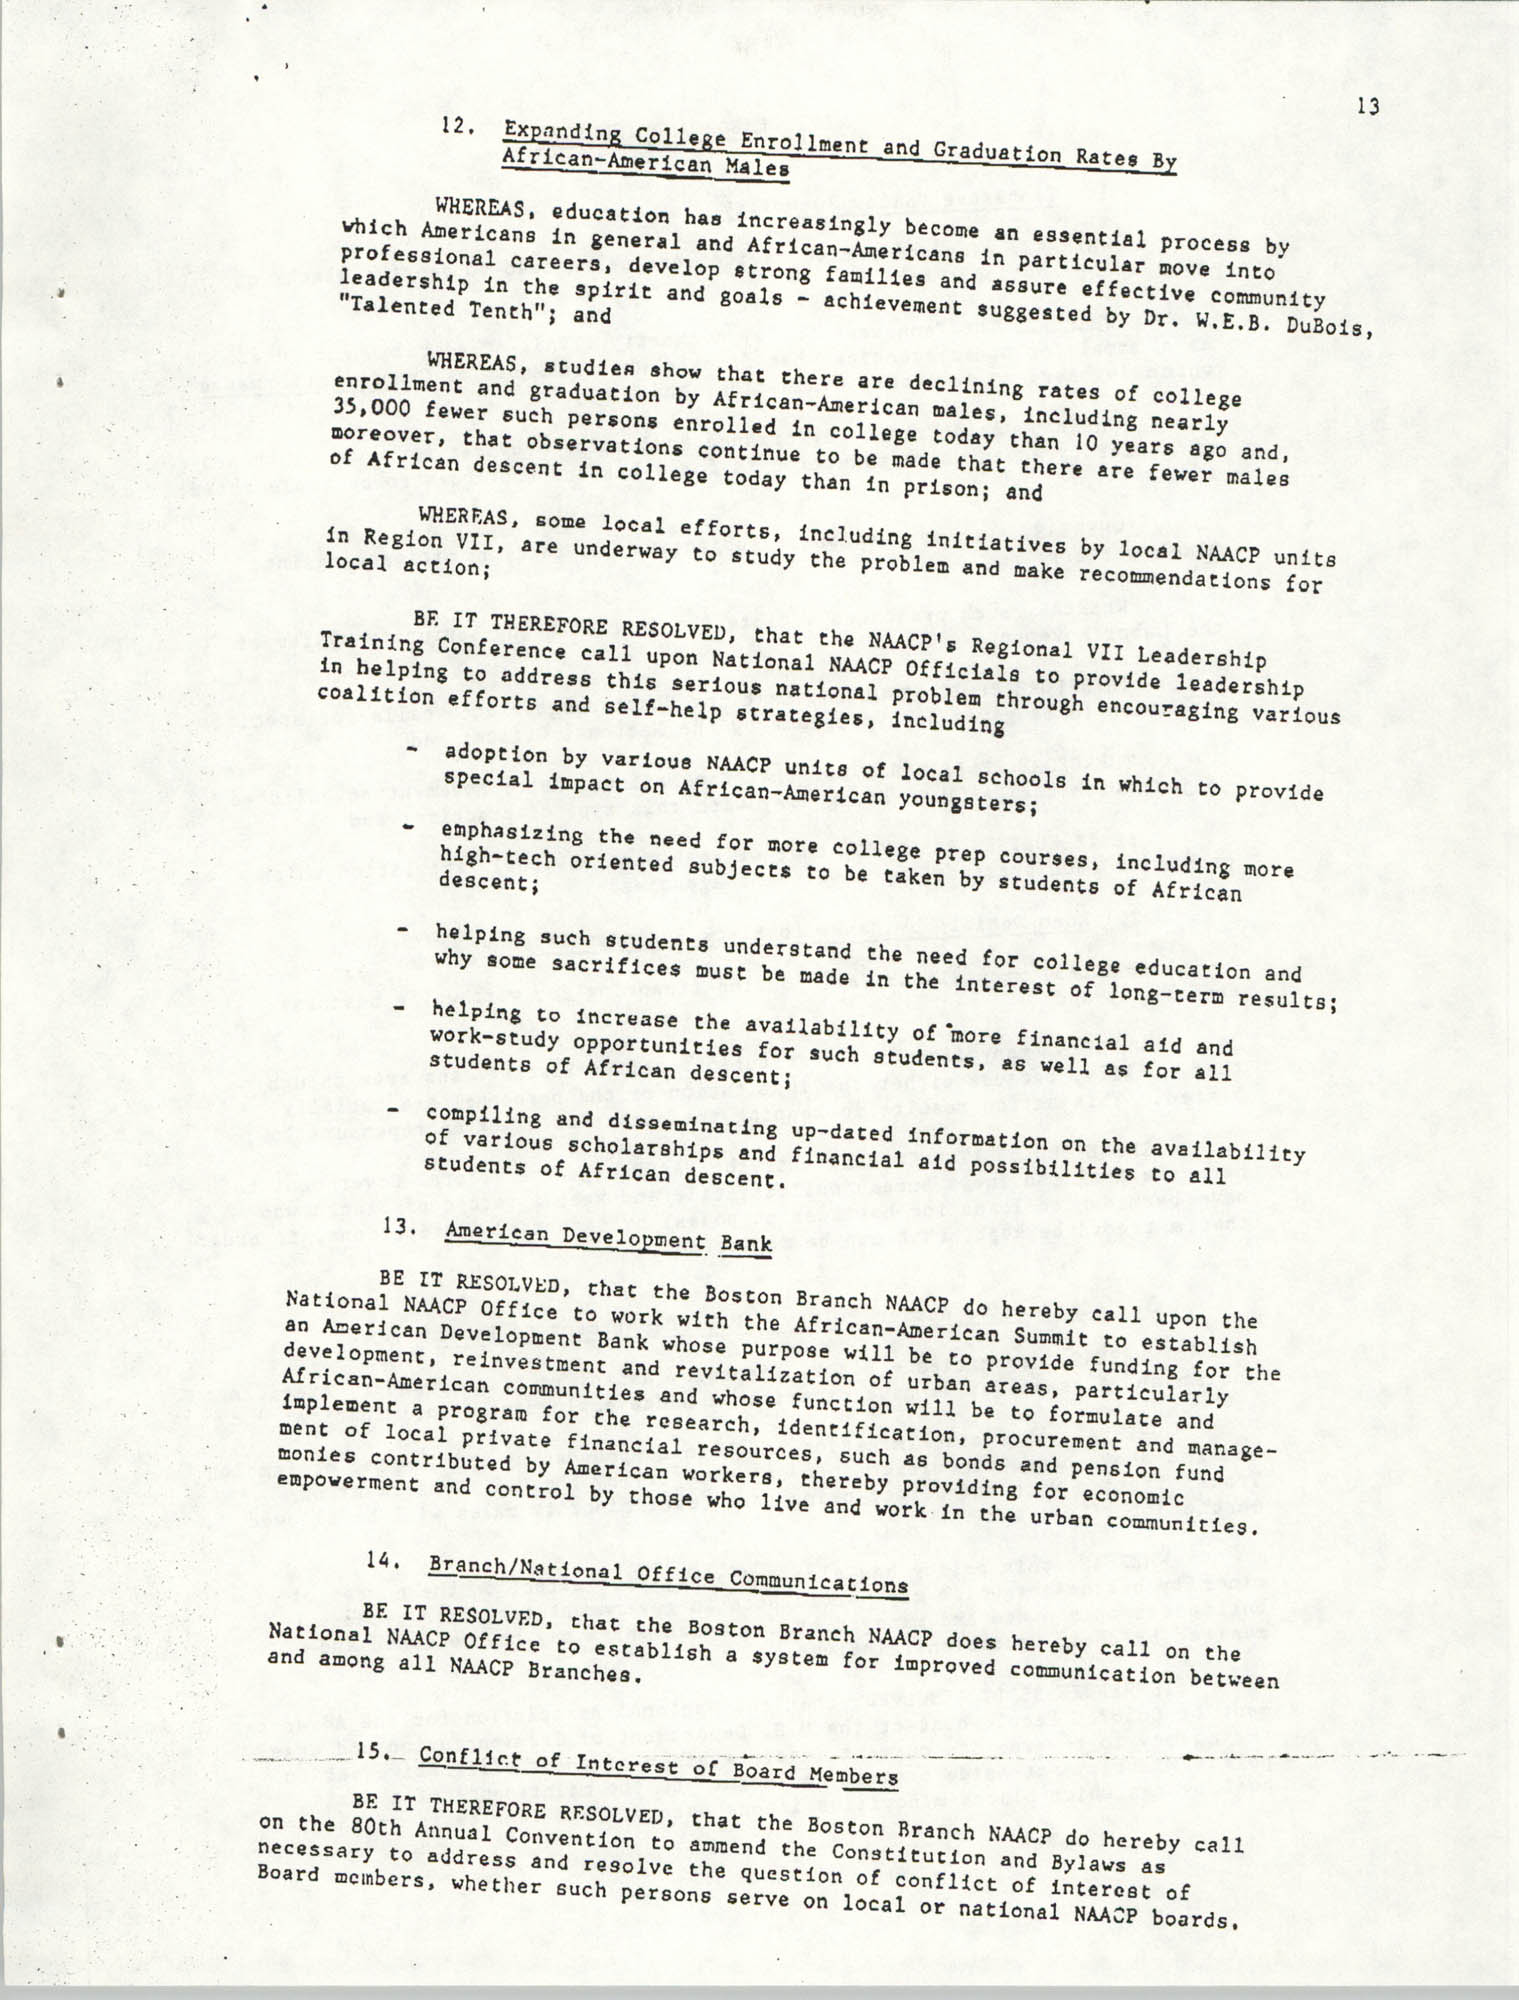 Resolutions Submitted Under Article X, Section 2 of the Constitution of the NAACP, Page 13